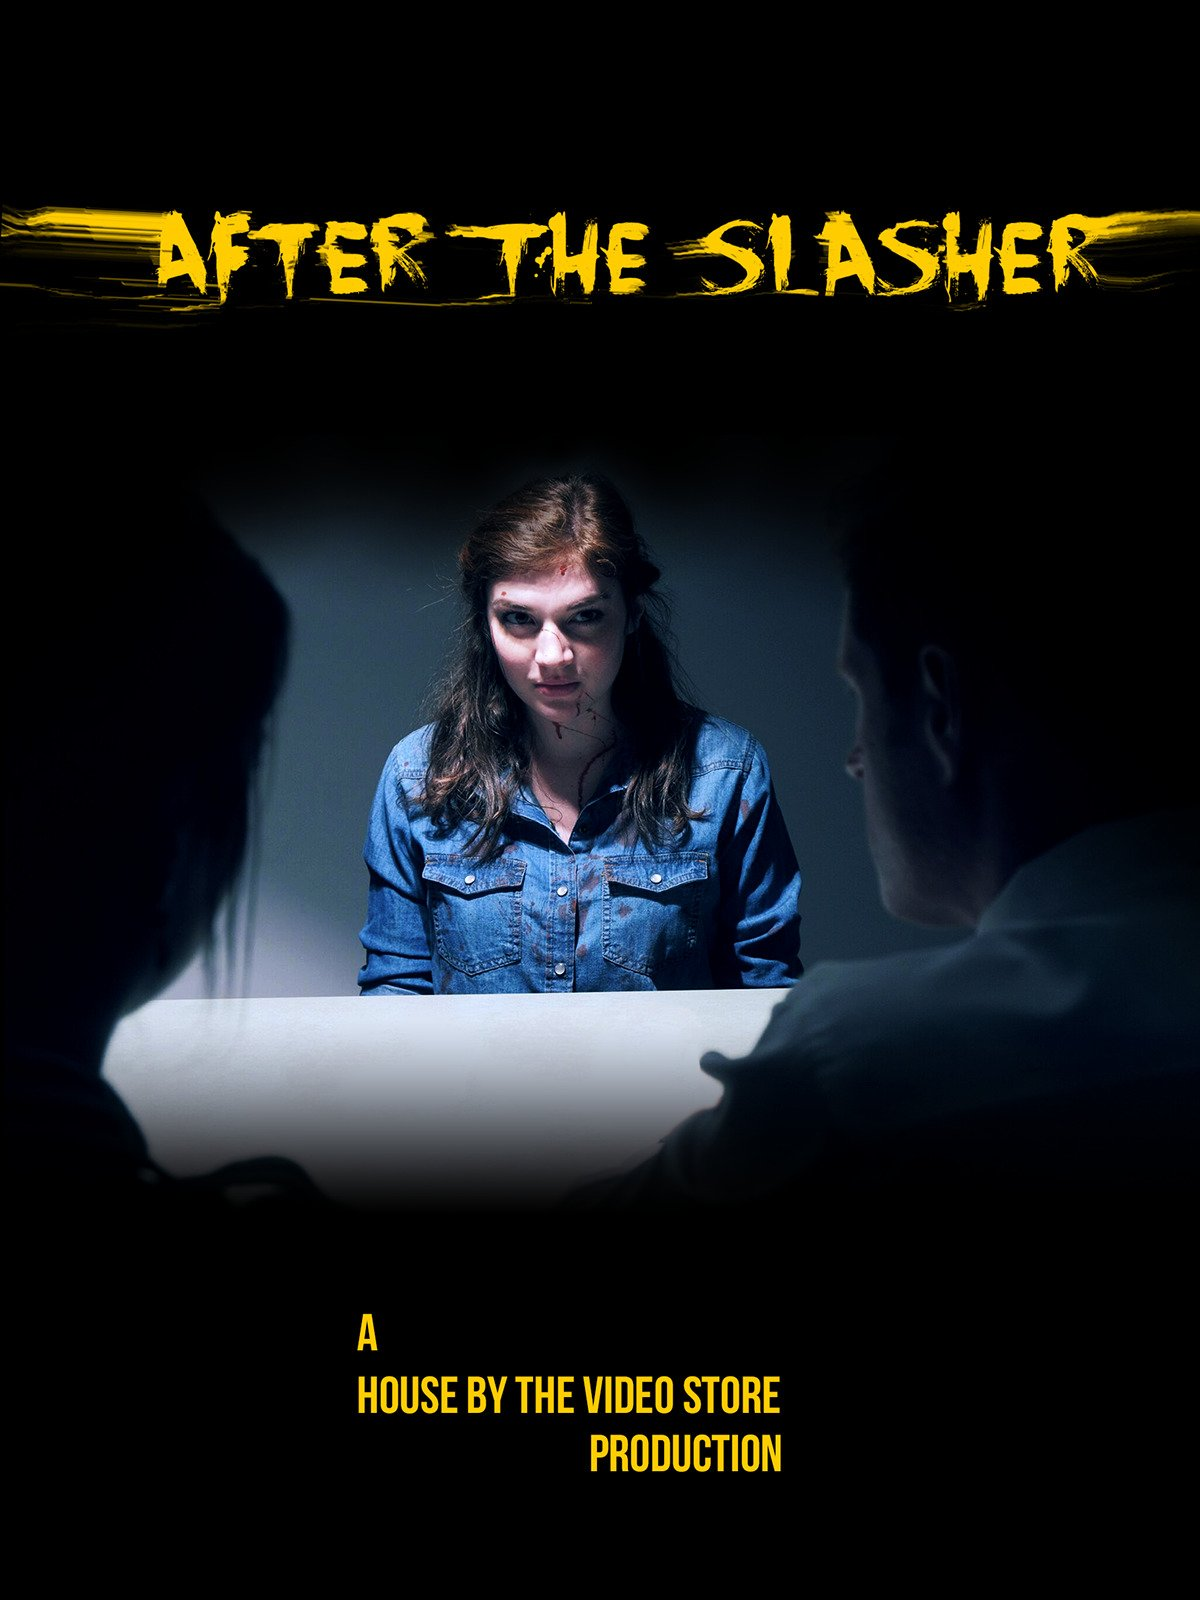 After The Slasher